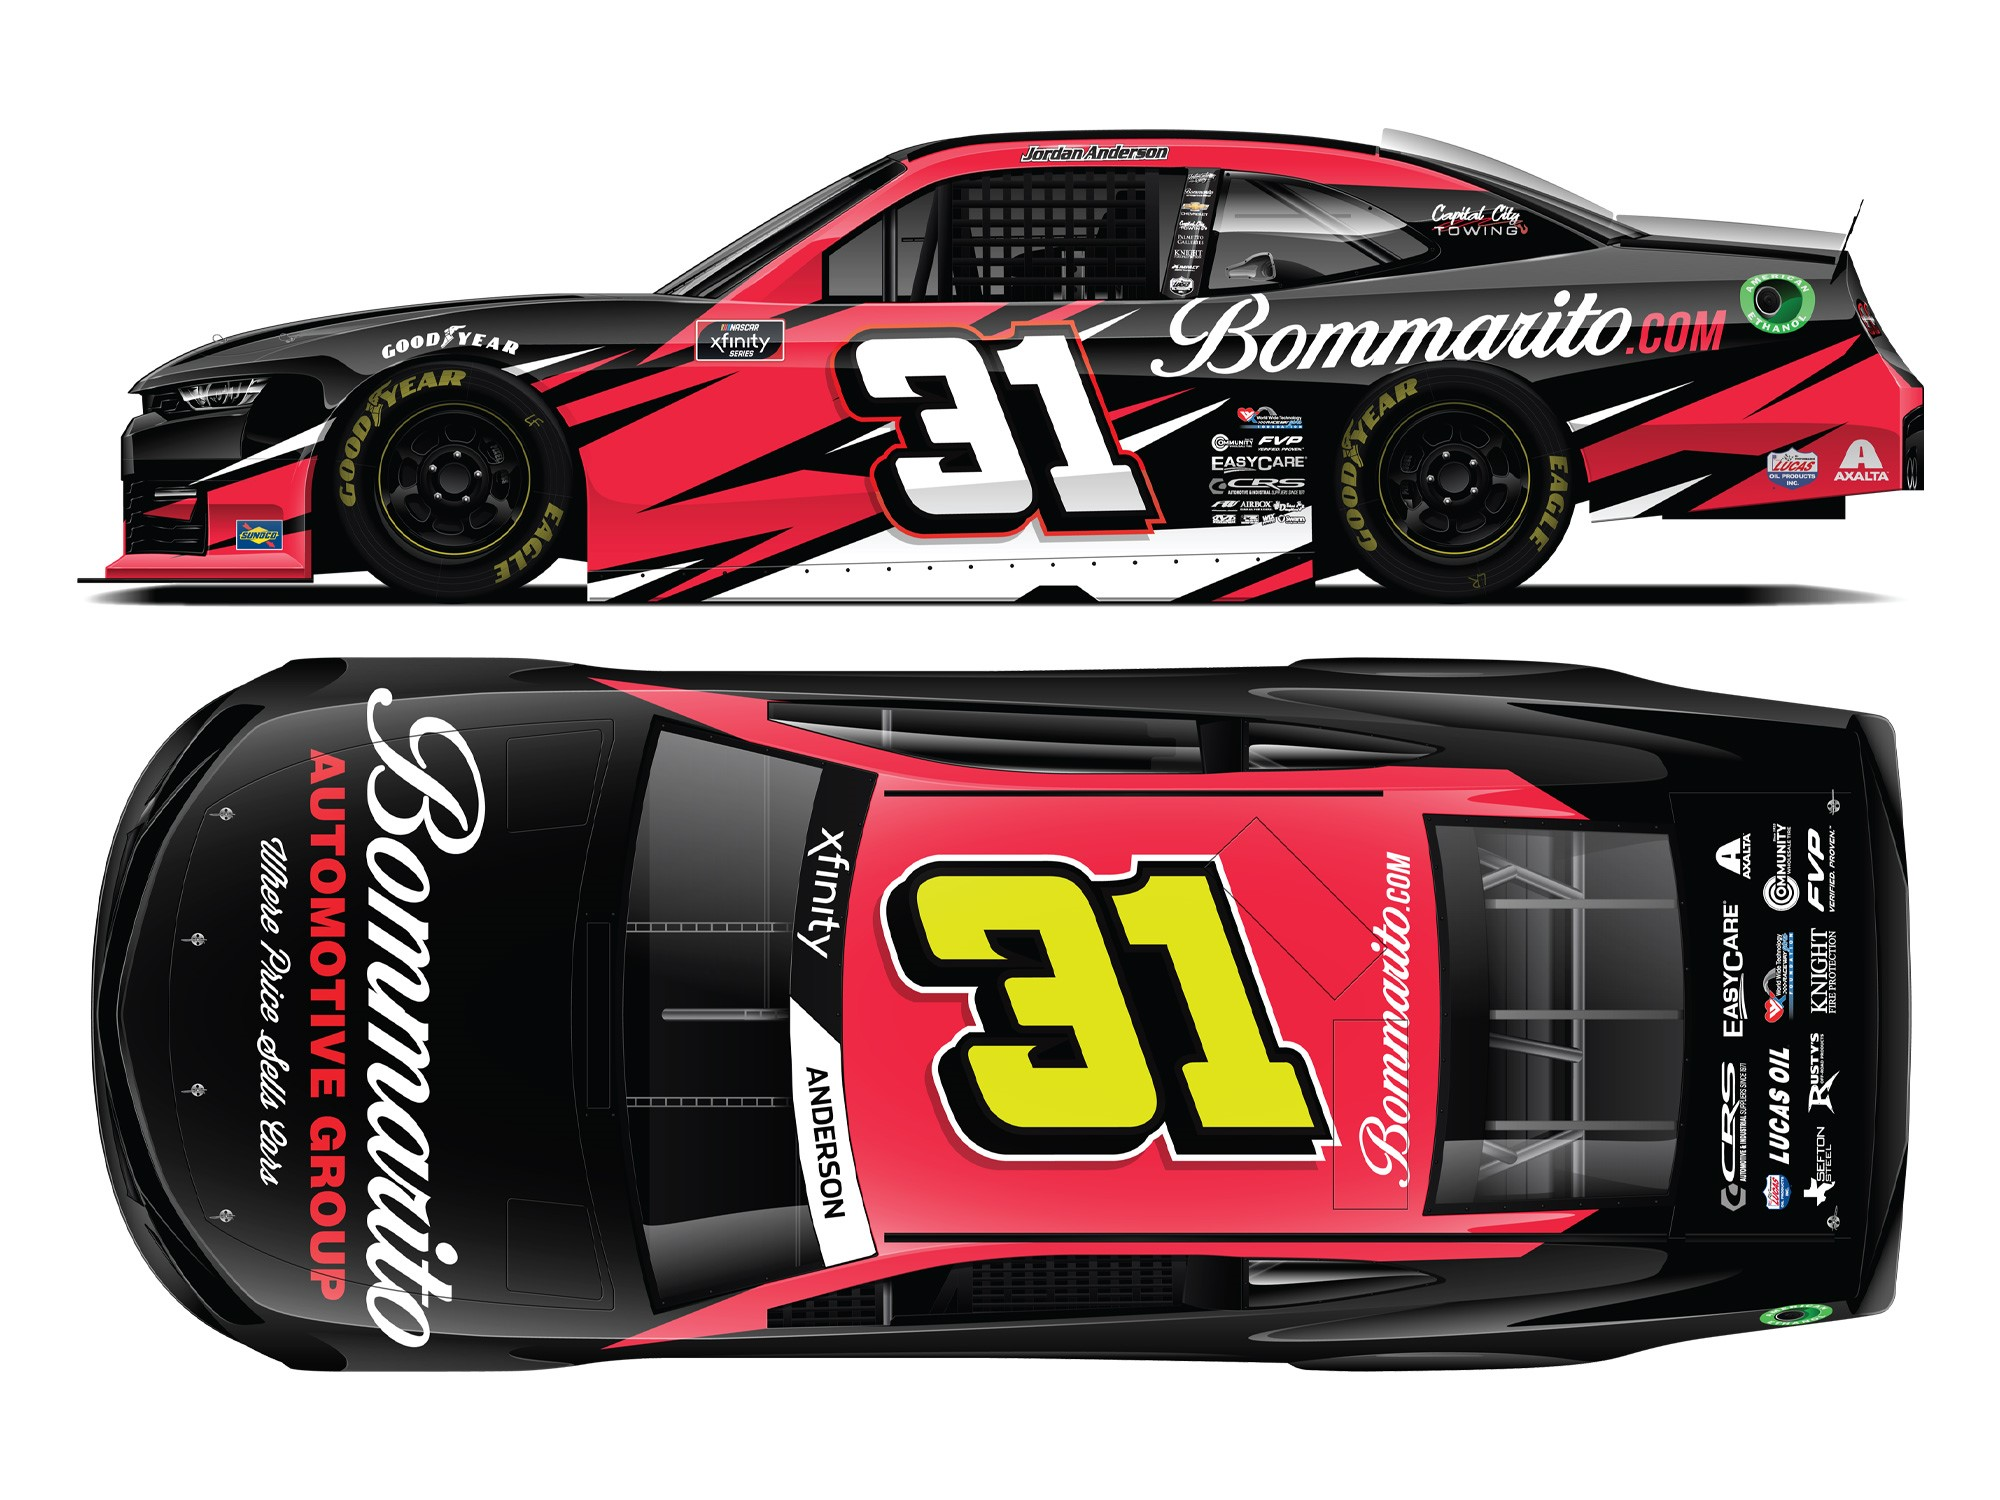 NOW AVAILABLE FOR ORDER; 2021 Jordan Anderson No. 31 Bommarito.com Chevrolet Camaro Die-Cast